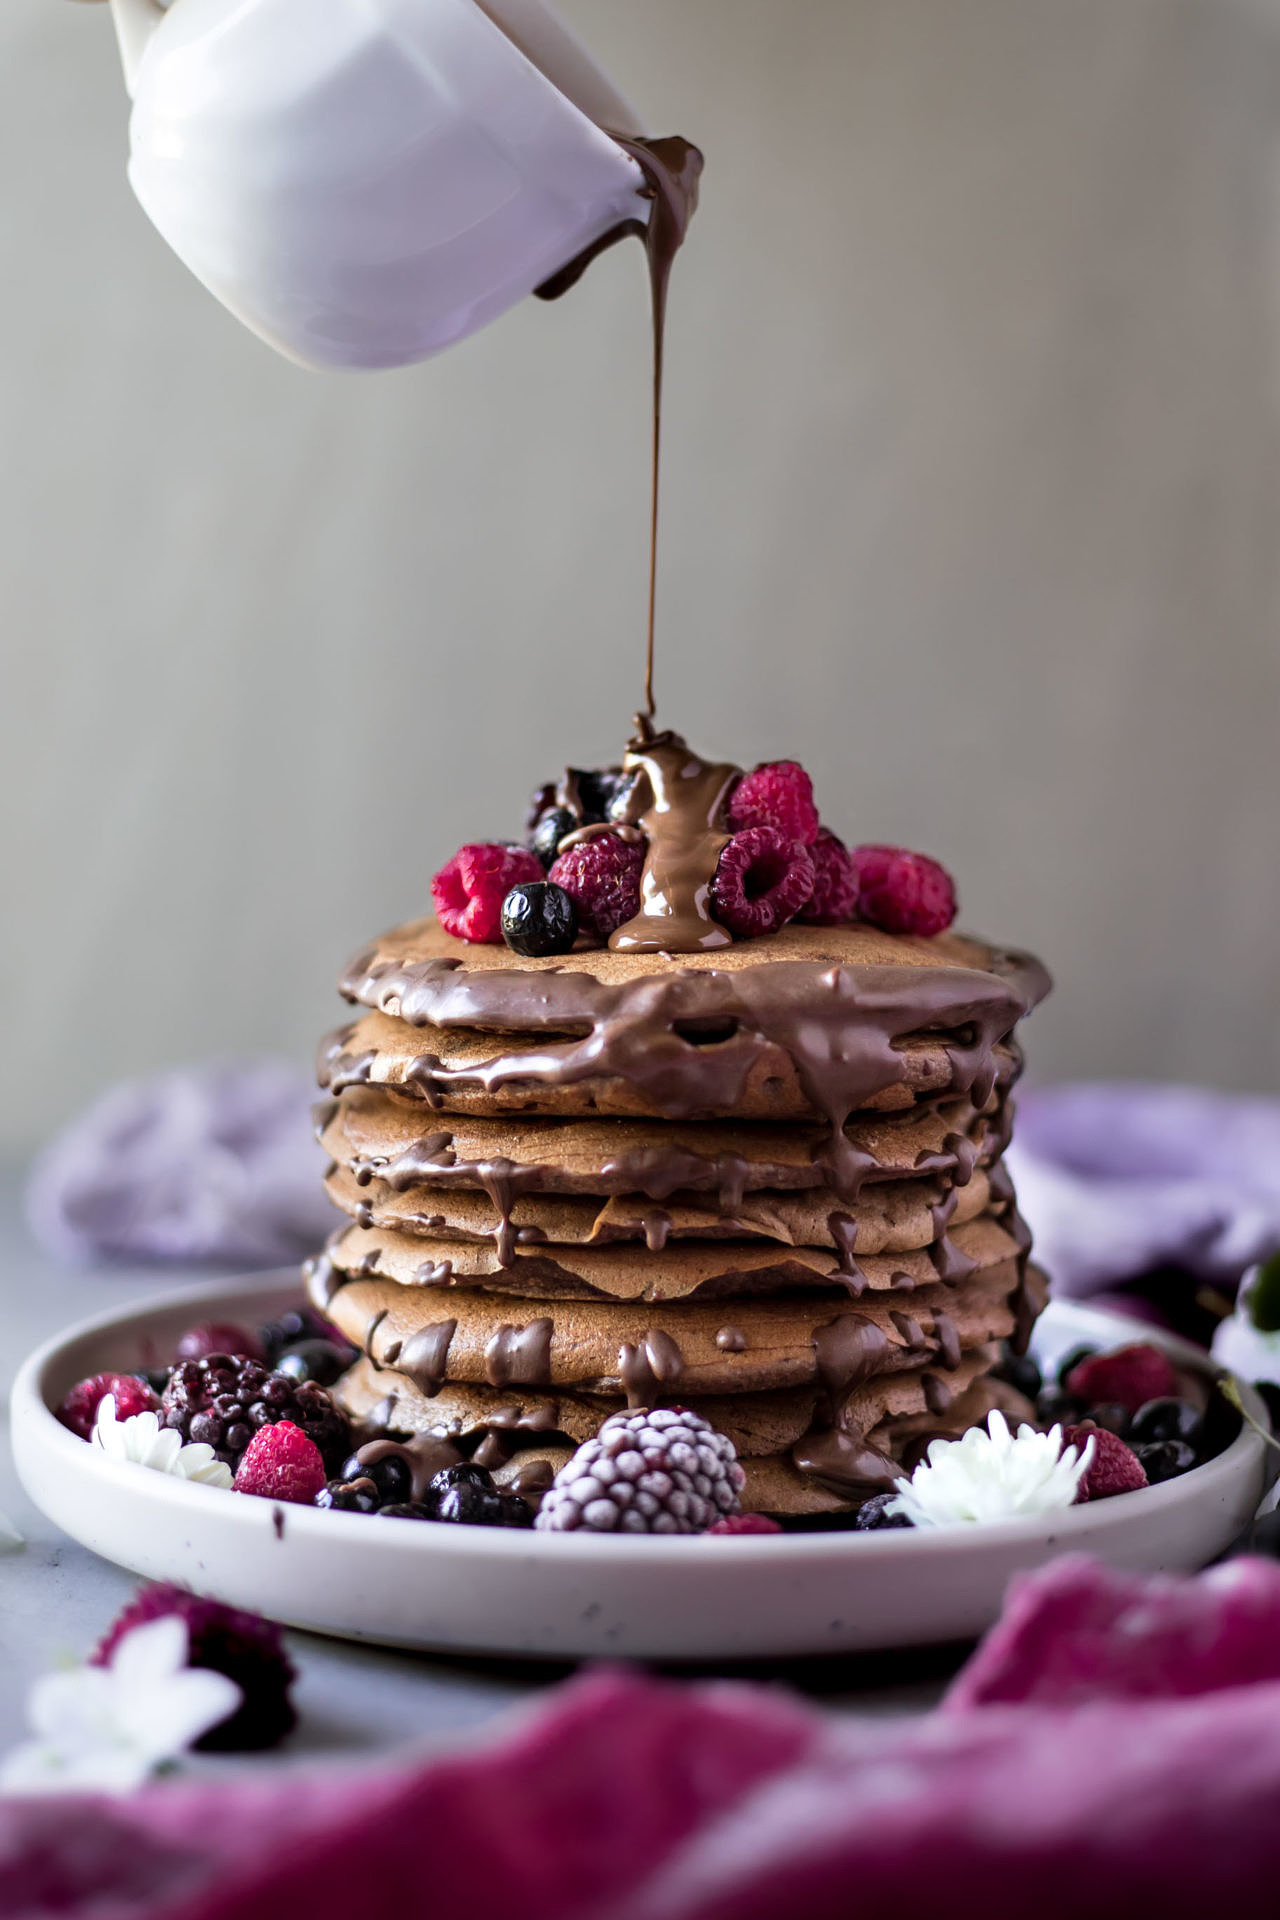 These gluten free chocolate banana pancakes are vegan and low FODMAP. They are so fluffy, flavorful, chocolaty and super delicious.